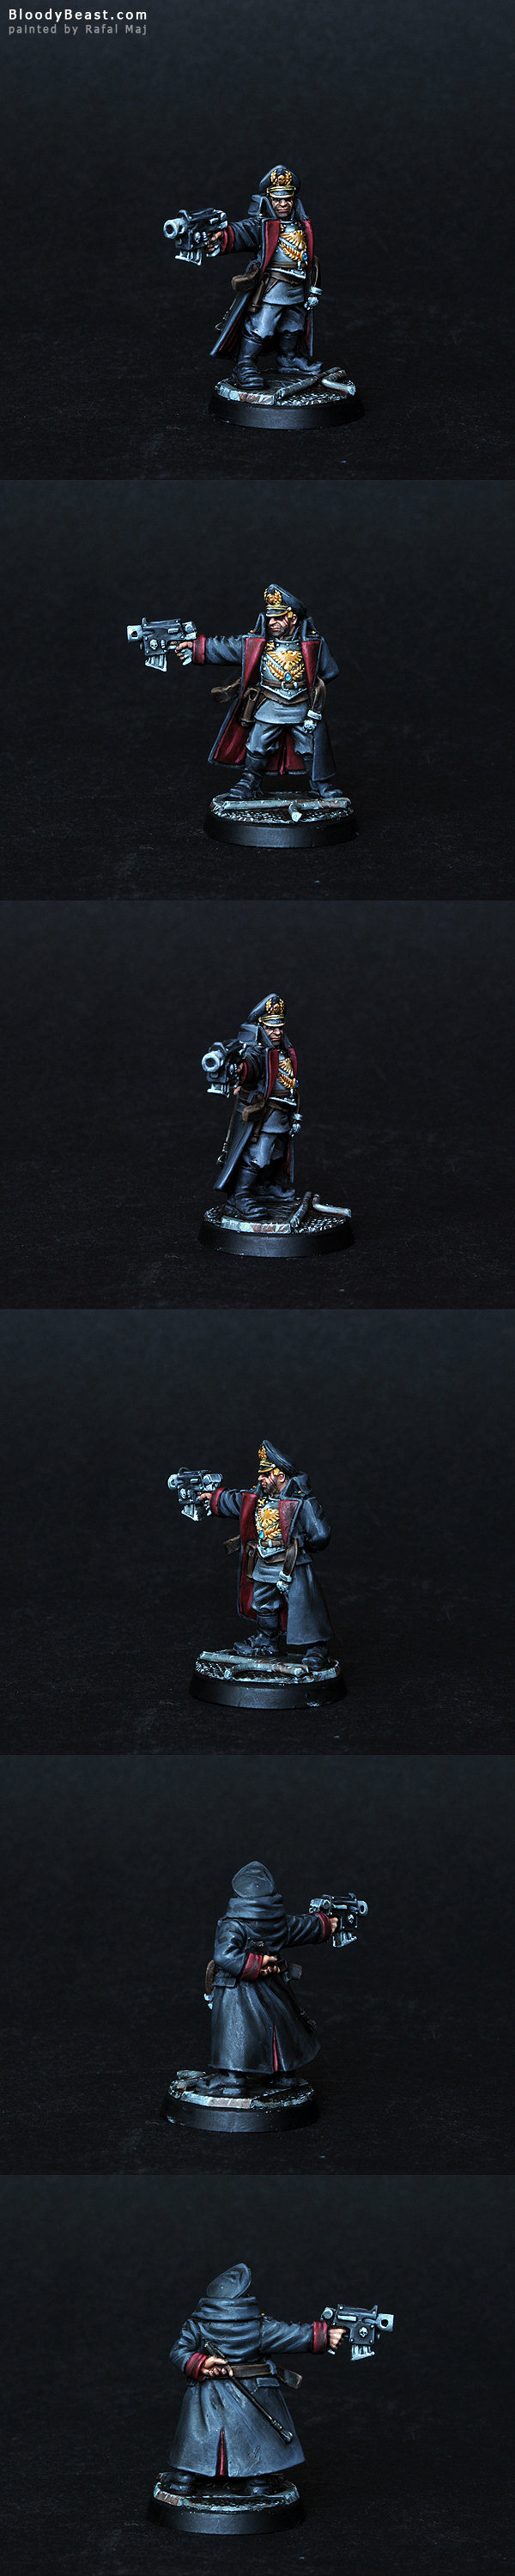 Imperial Guards Commissar with Bolt Pistol painted by Rafal Maj (BloodyBeast.com)